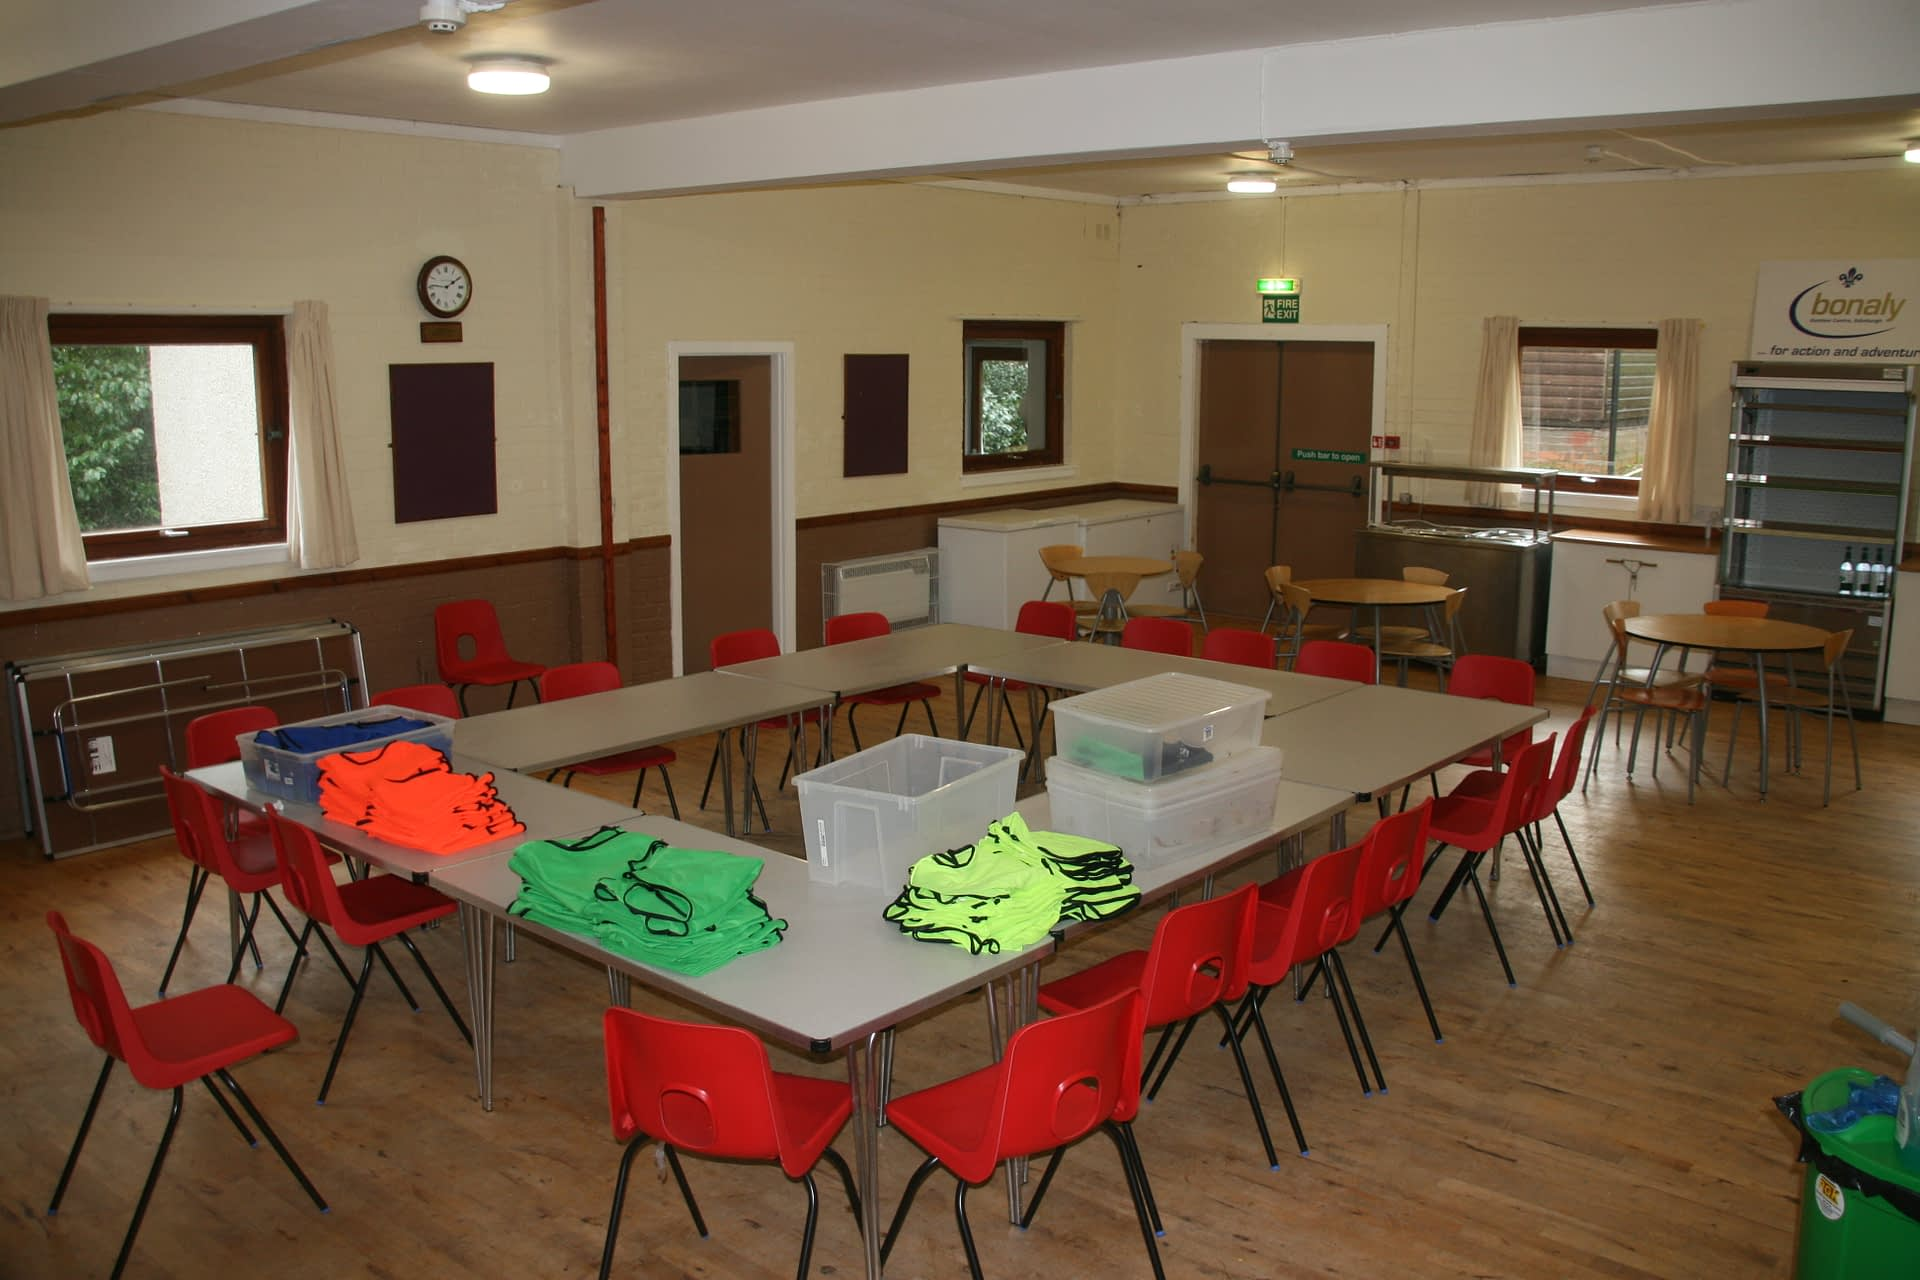 Chalet dining hall at Bonaly